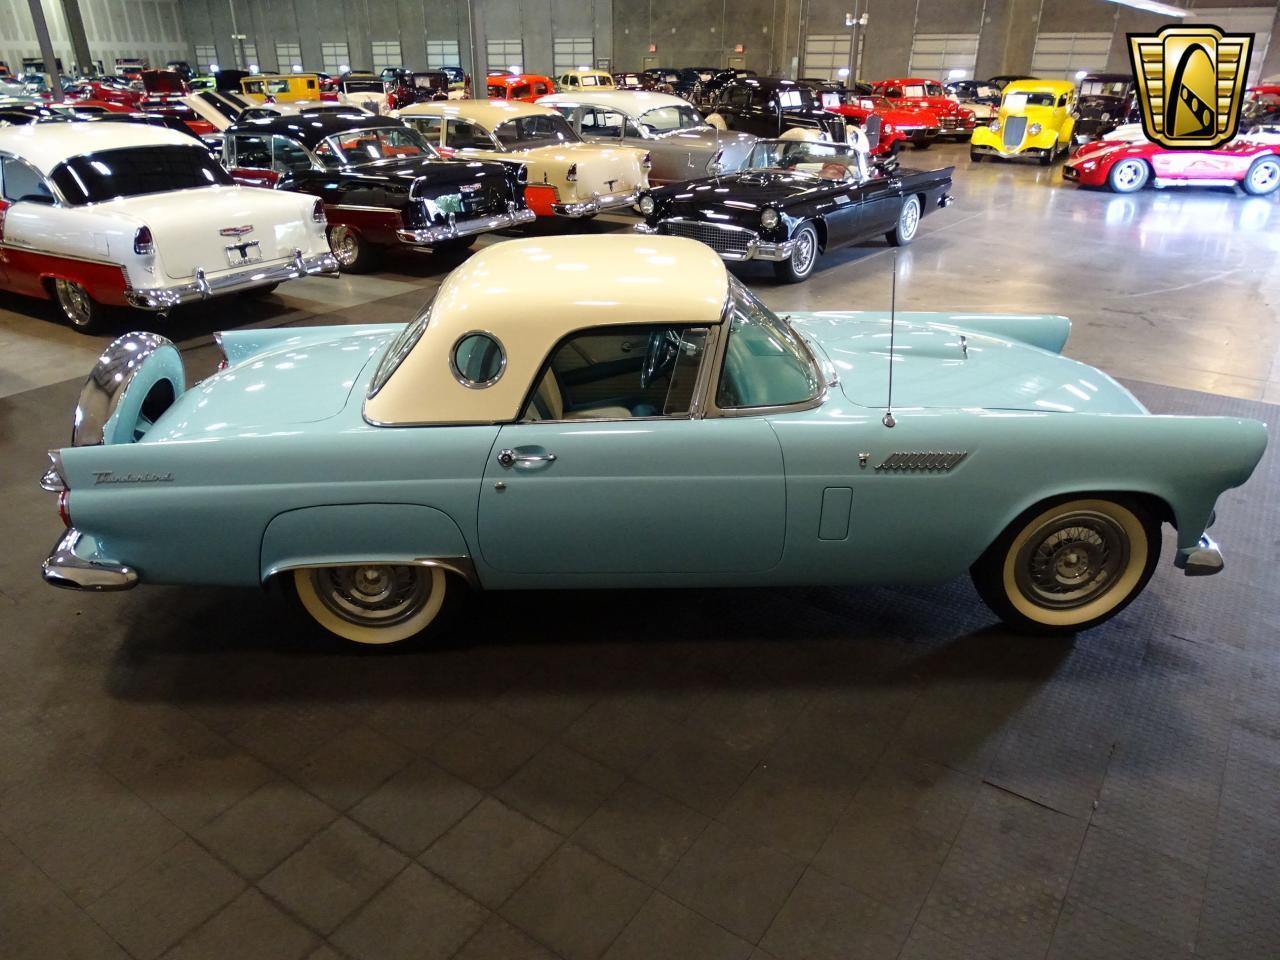 Large Picture of 1956 Ford Thunderbird located in Ruskin Florida - $35,995.00 Offered by Gateway Classic Cars - Tampa - LBDH